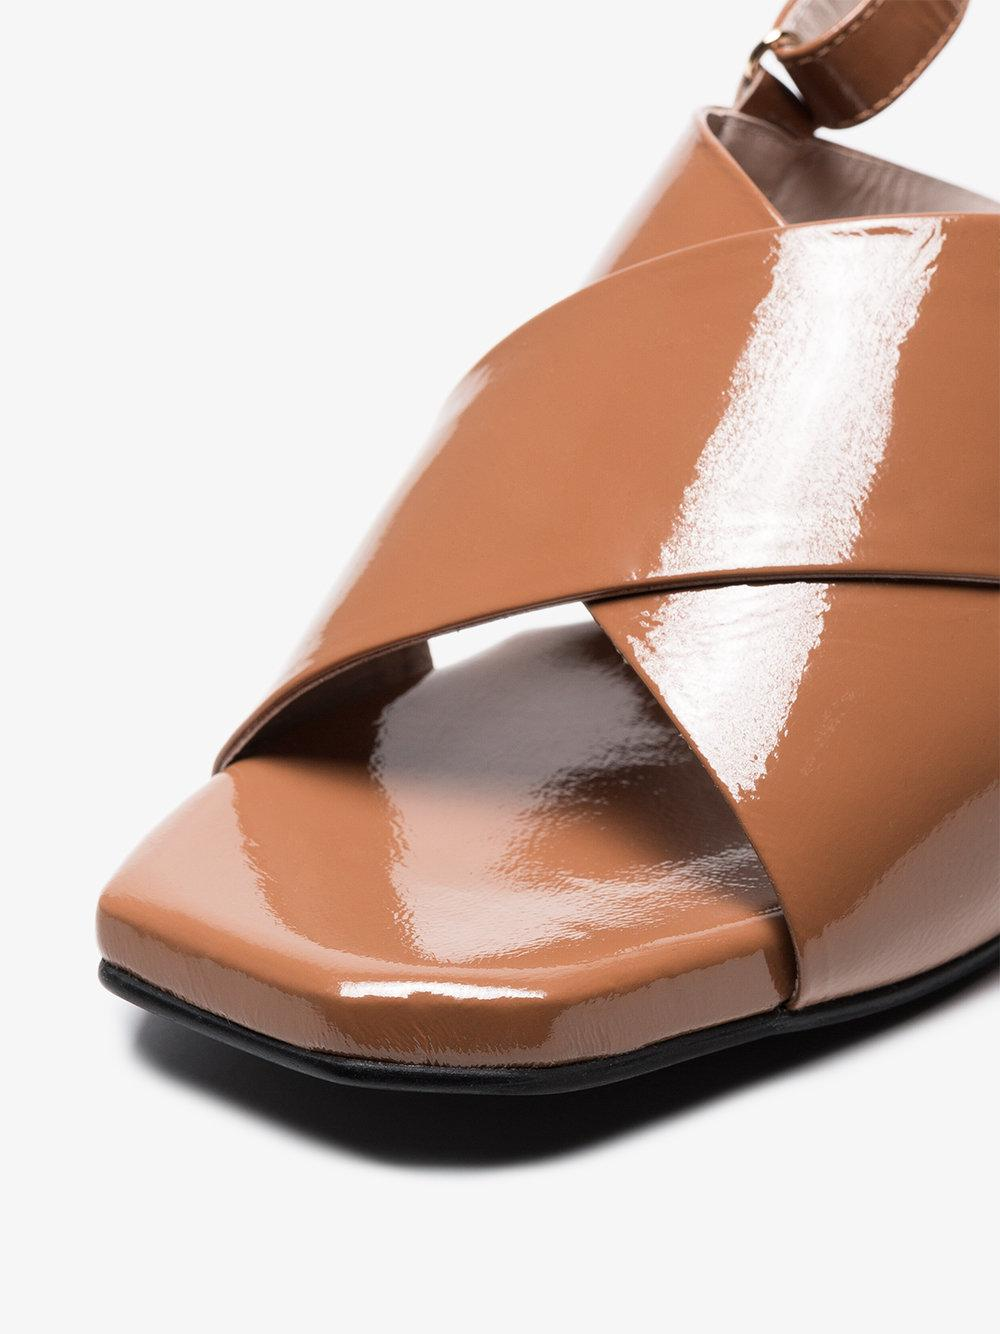 brown 60 patent leather cross-over sandals Reike Nen 5OmpPj7